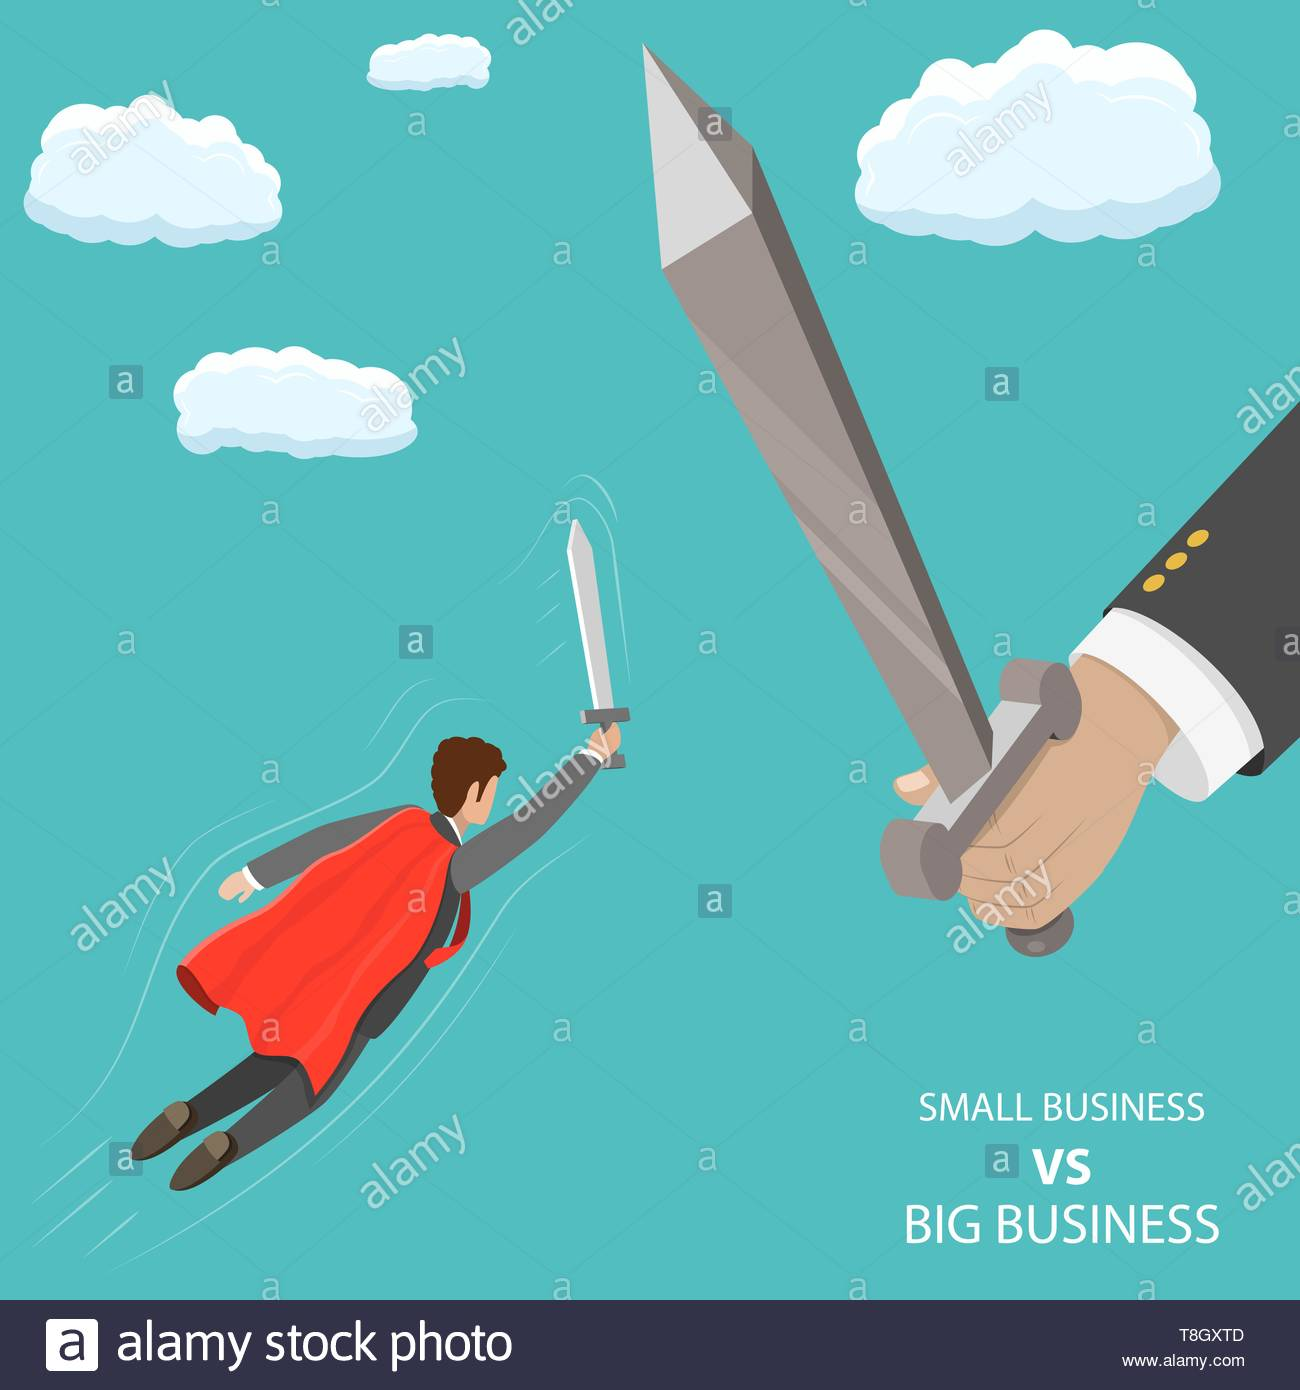 Small business VS big flat isometric vector concept. A businessman that looks like a superhero is flying with sword in his hand to fight with huge han - Stock Vector